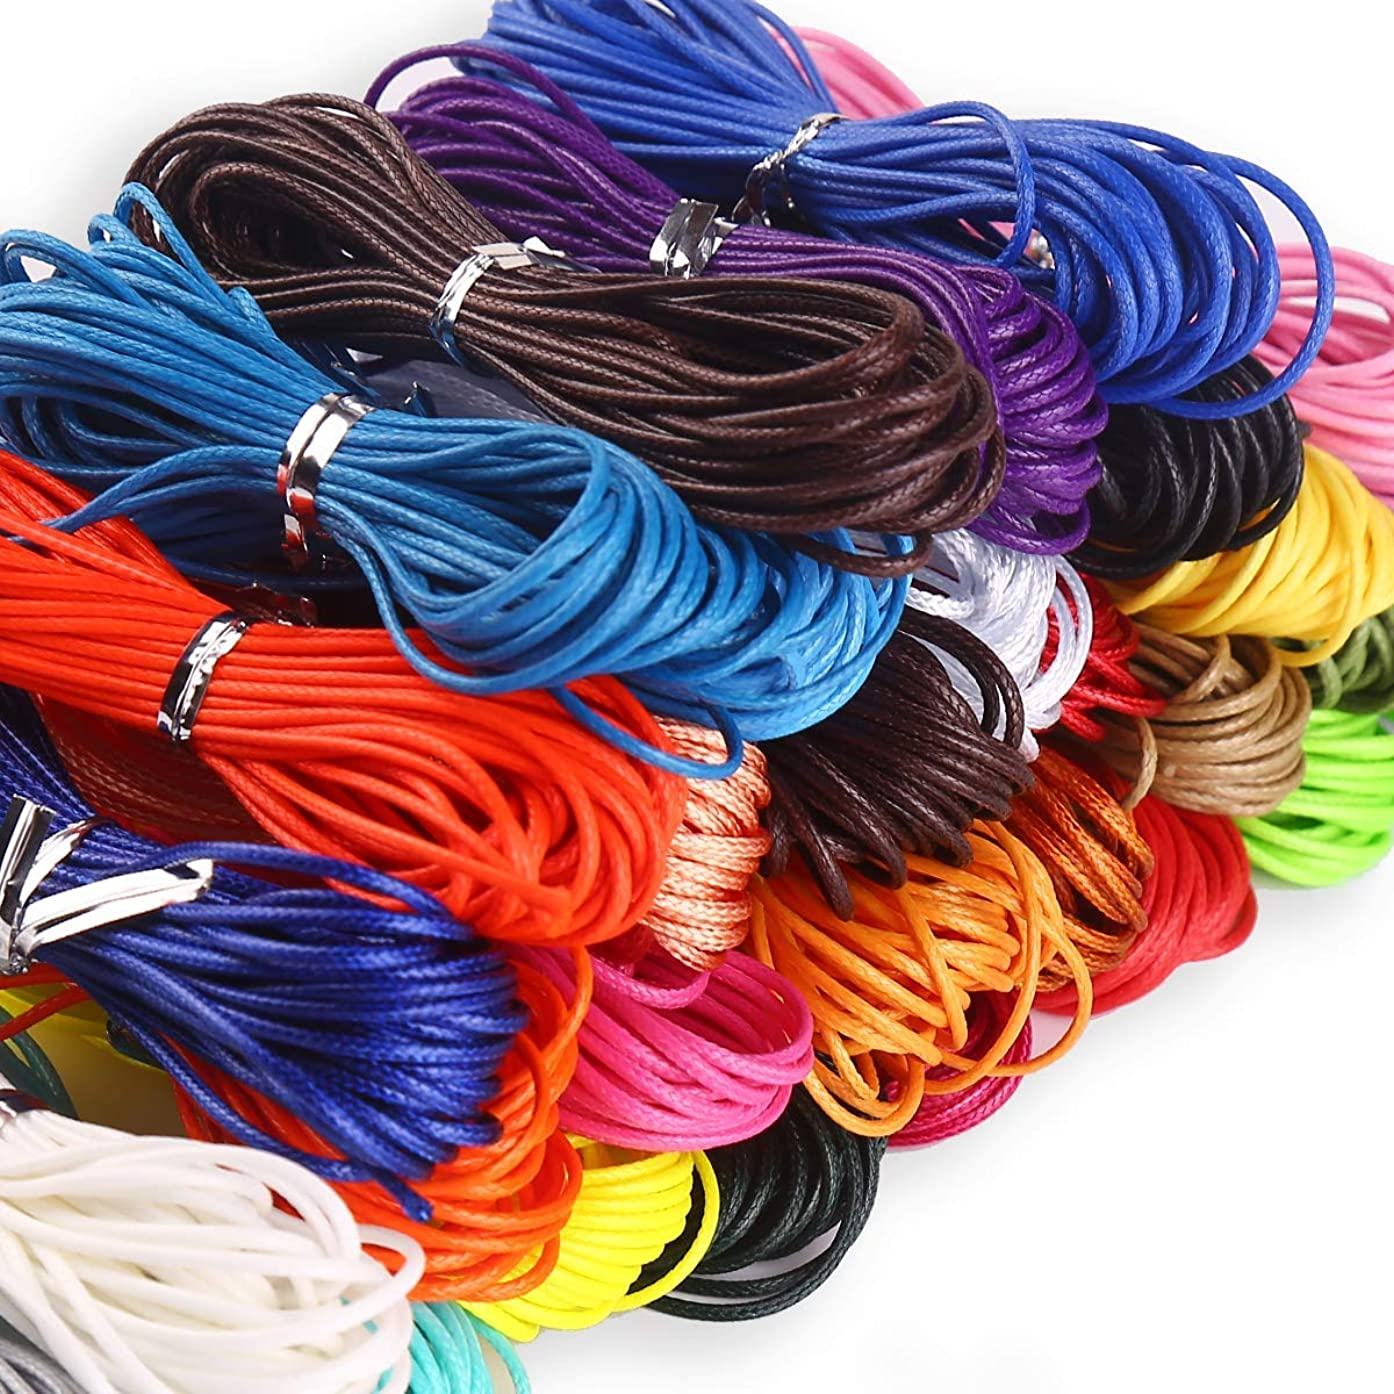 1mm Waxed Cord String Non Stretch Thread for Jewelry Craft Making, Hang Tags, 24 Colors 120 Meters/ 131 Yards